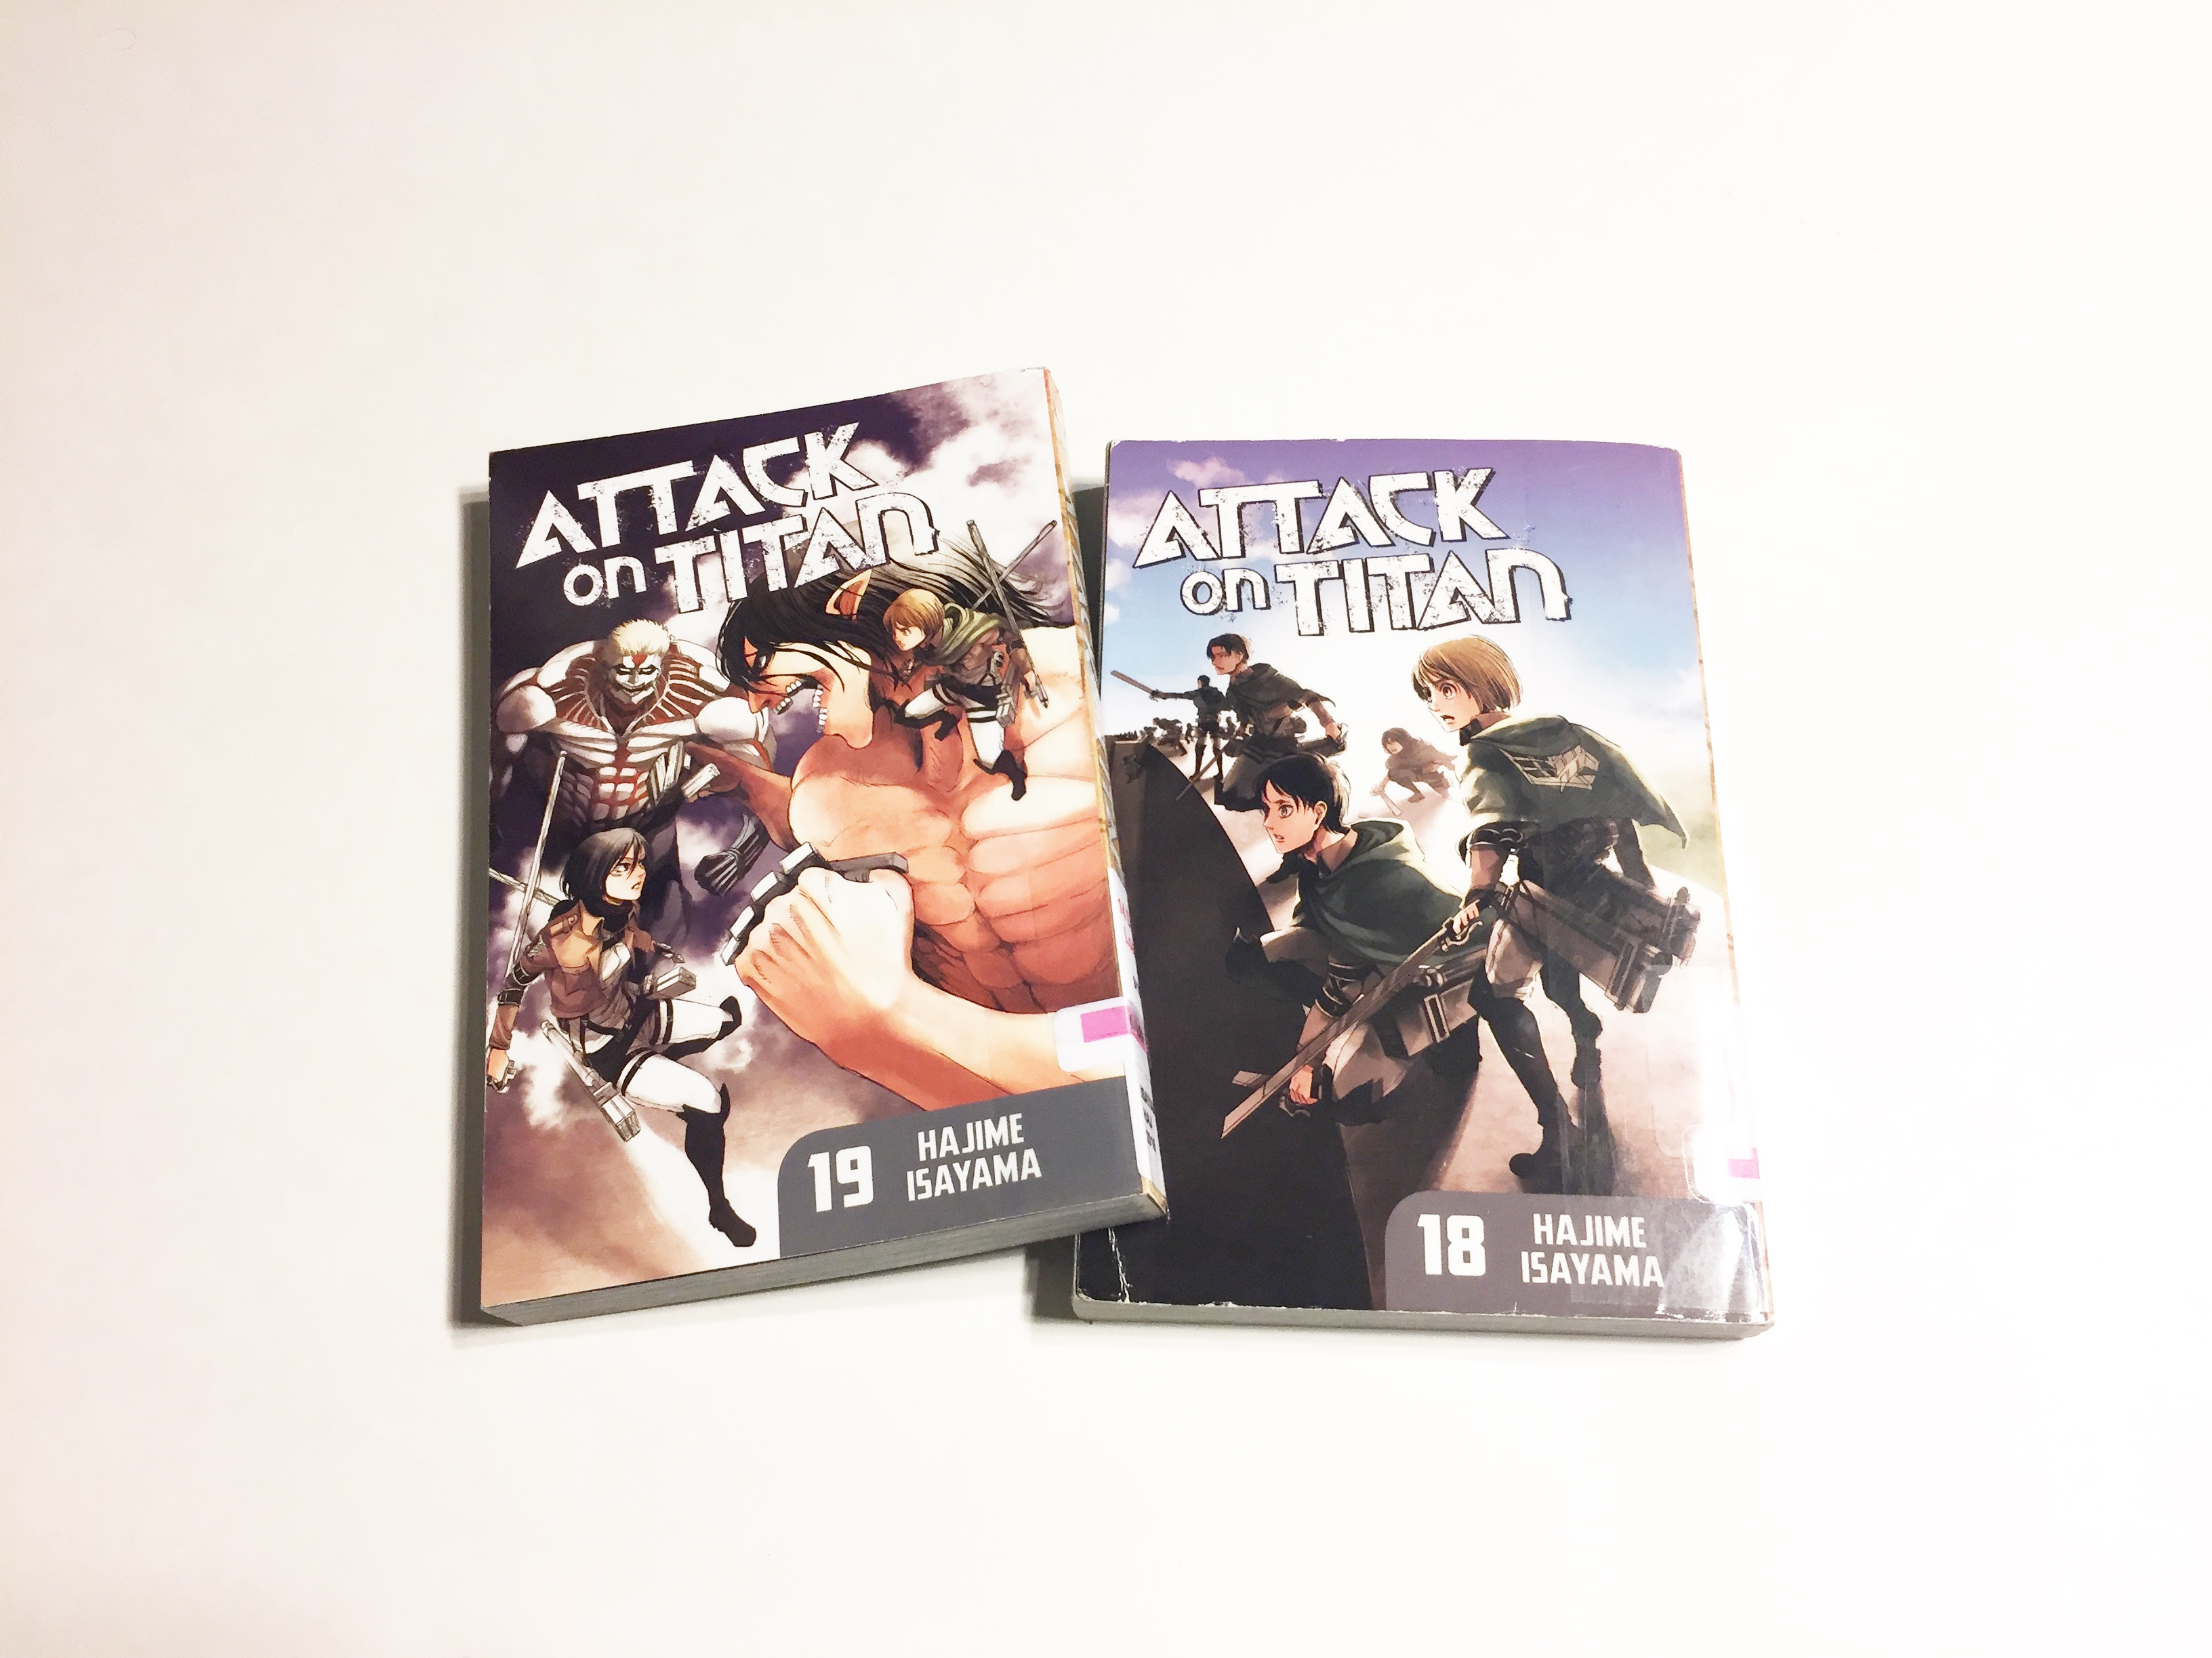 Photo of Attack on Titan Volumes 18 and 19 by Hajime Isayama